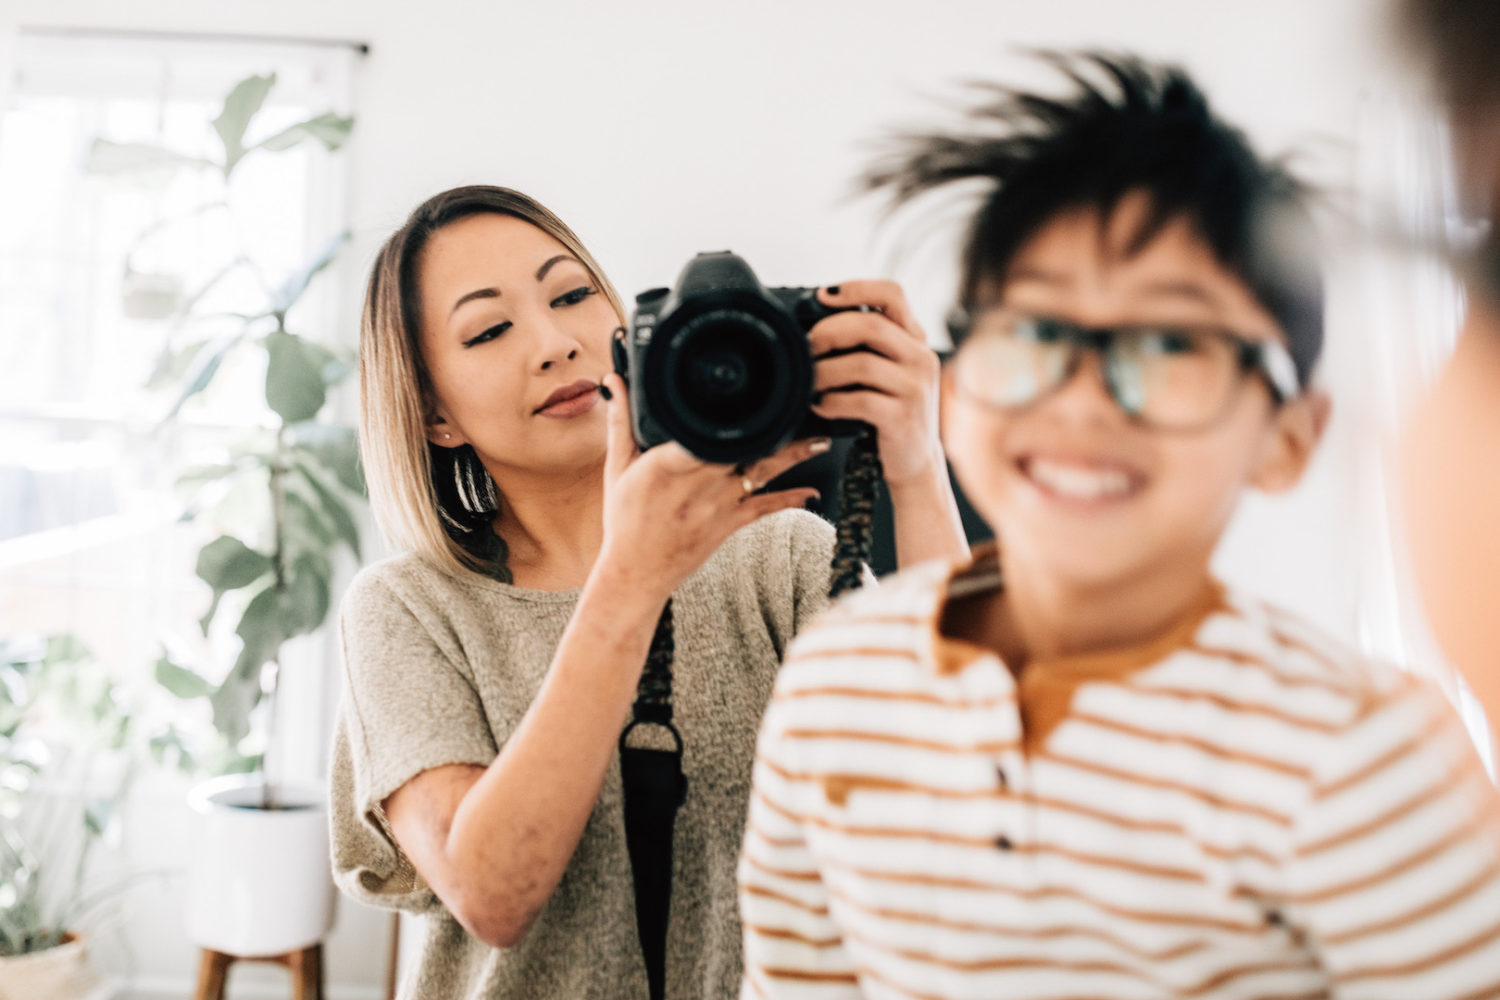 Candid family portraits (and tips for shooting at home)